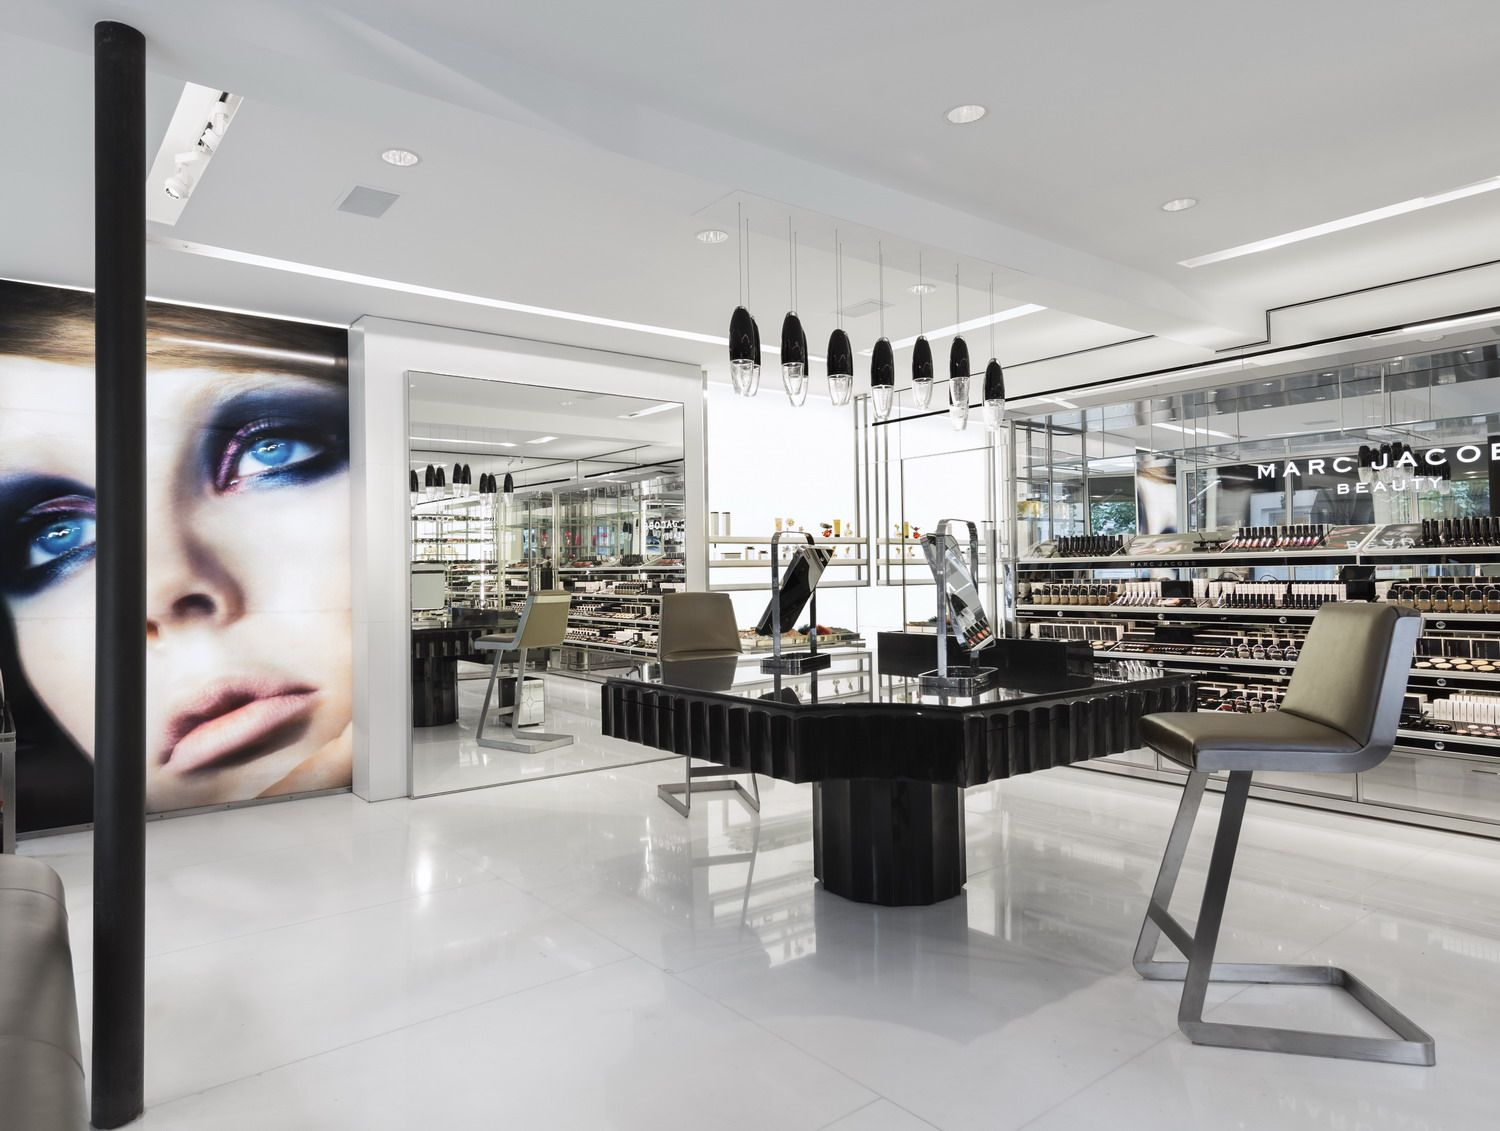 Prague commercial interior design news mindful design consulting - Find This Pin And More On Retail Design That Rocks